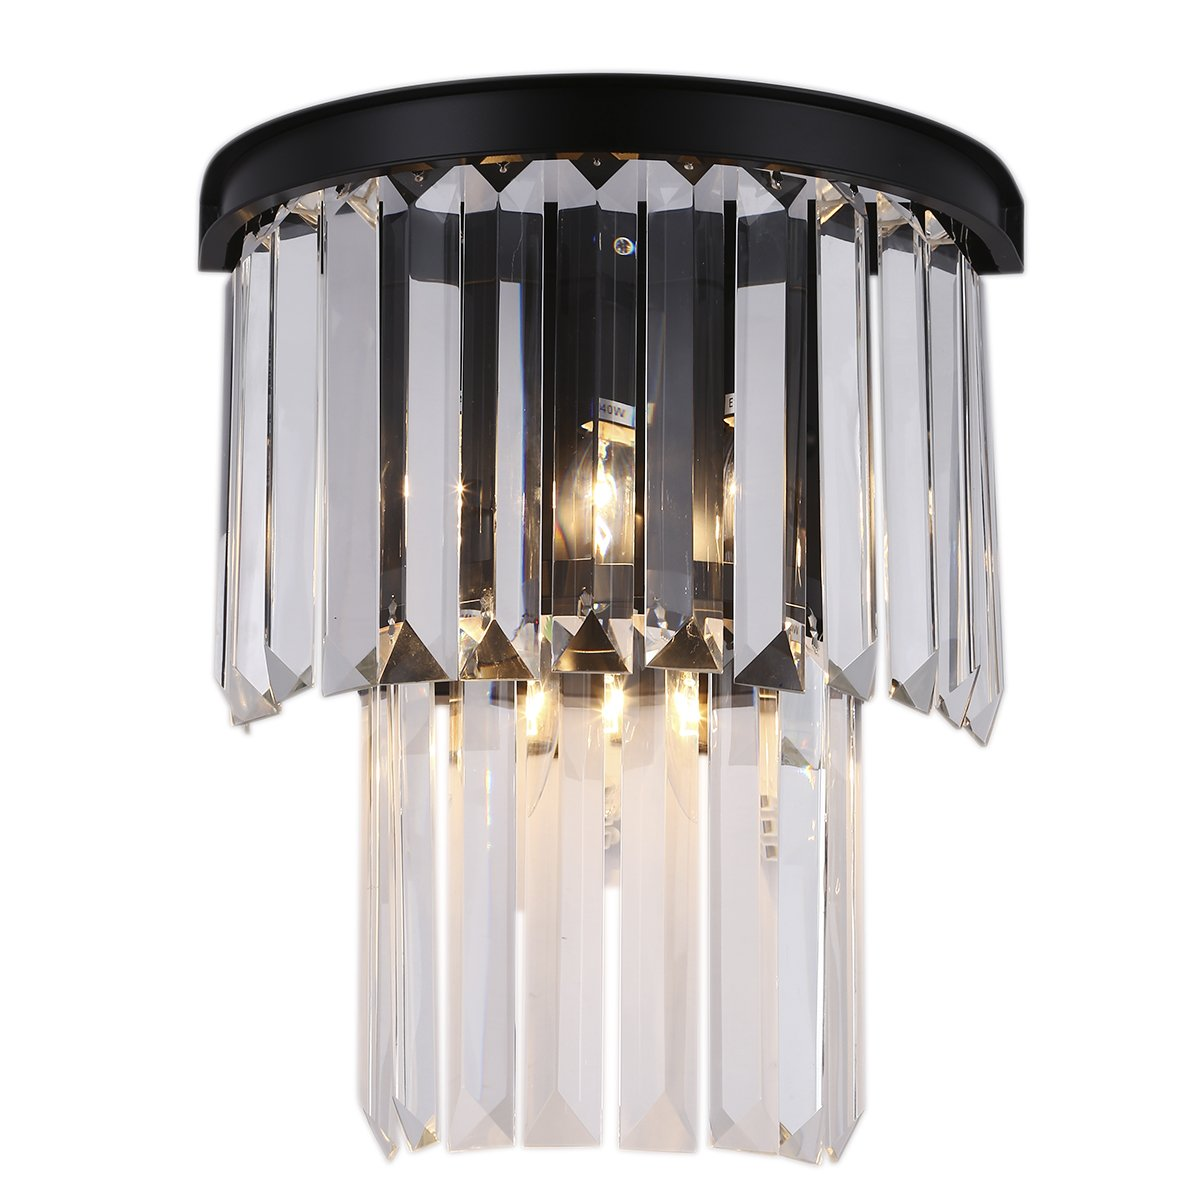 Crystal Prism Wall Sconce Lamp 3 Lights Ceiling Light Creative Modern Simple Wall Lamp Hotel Retro Bedside Living Room Bedroom Wall Light Black Metal + Clear Crystals CZ096B